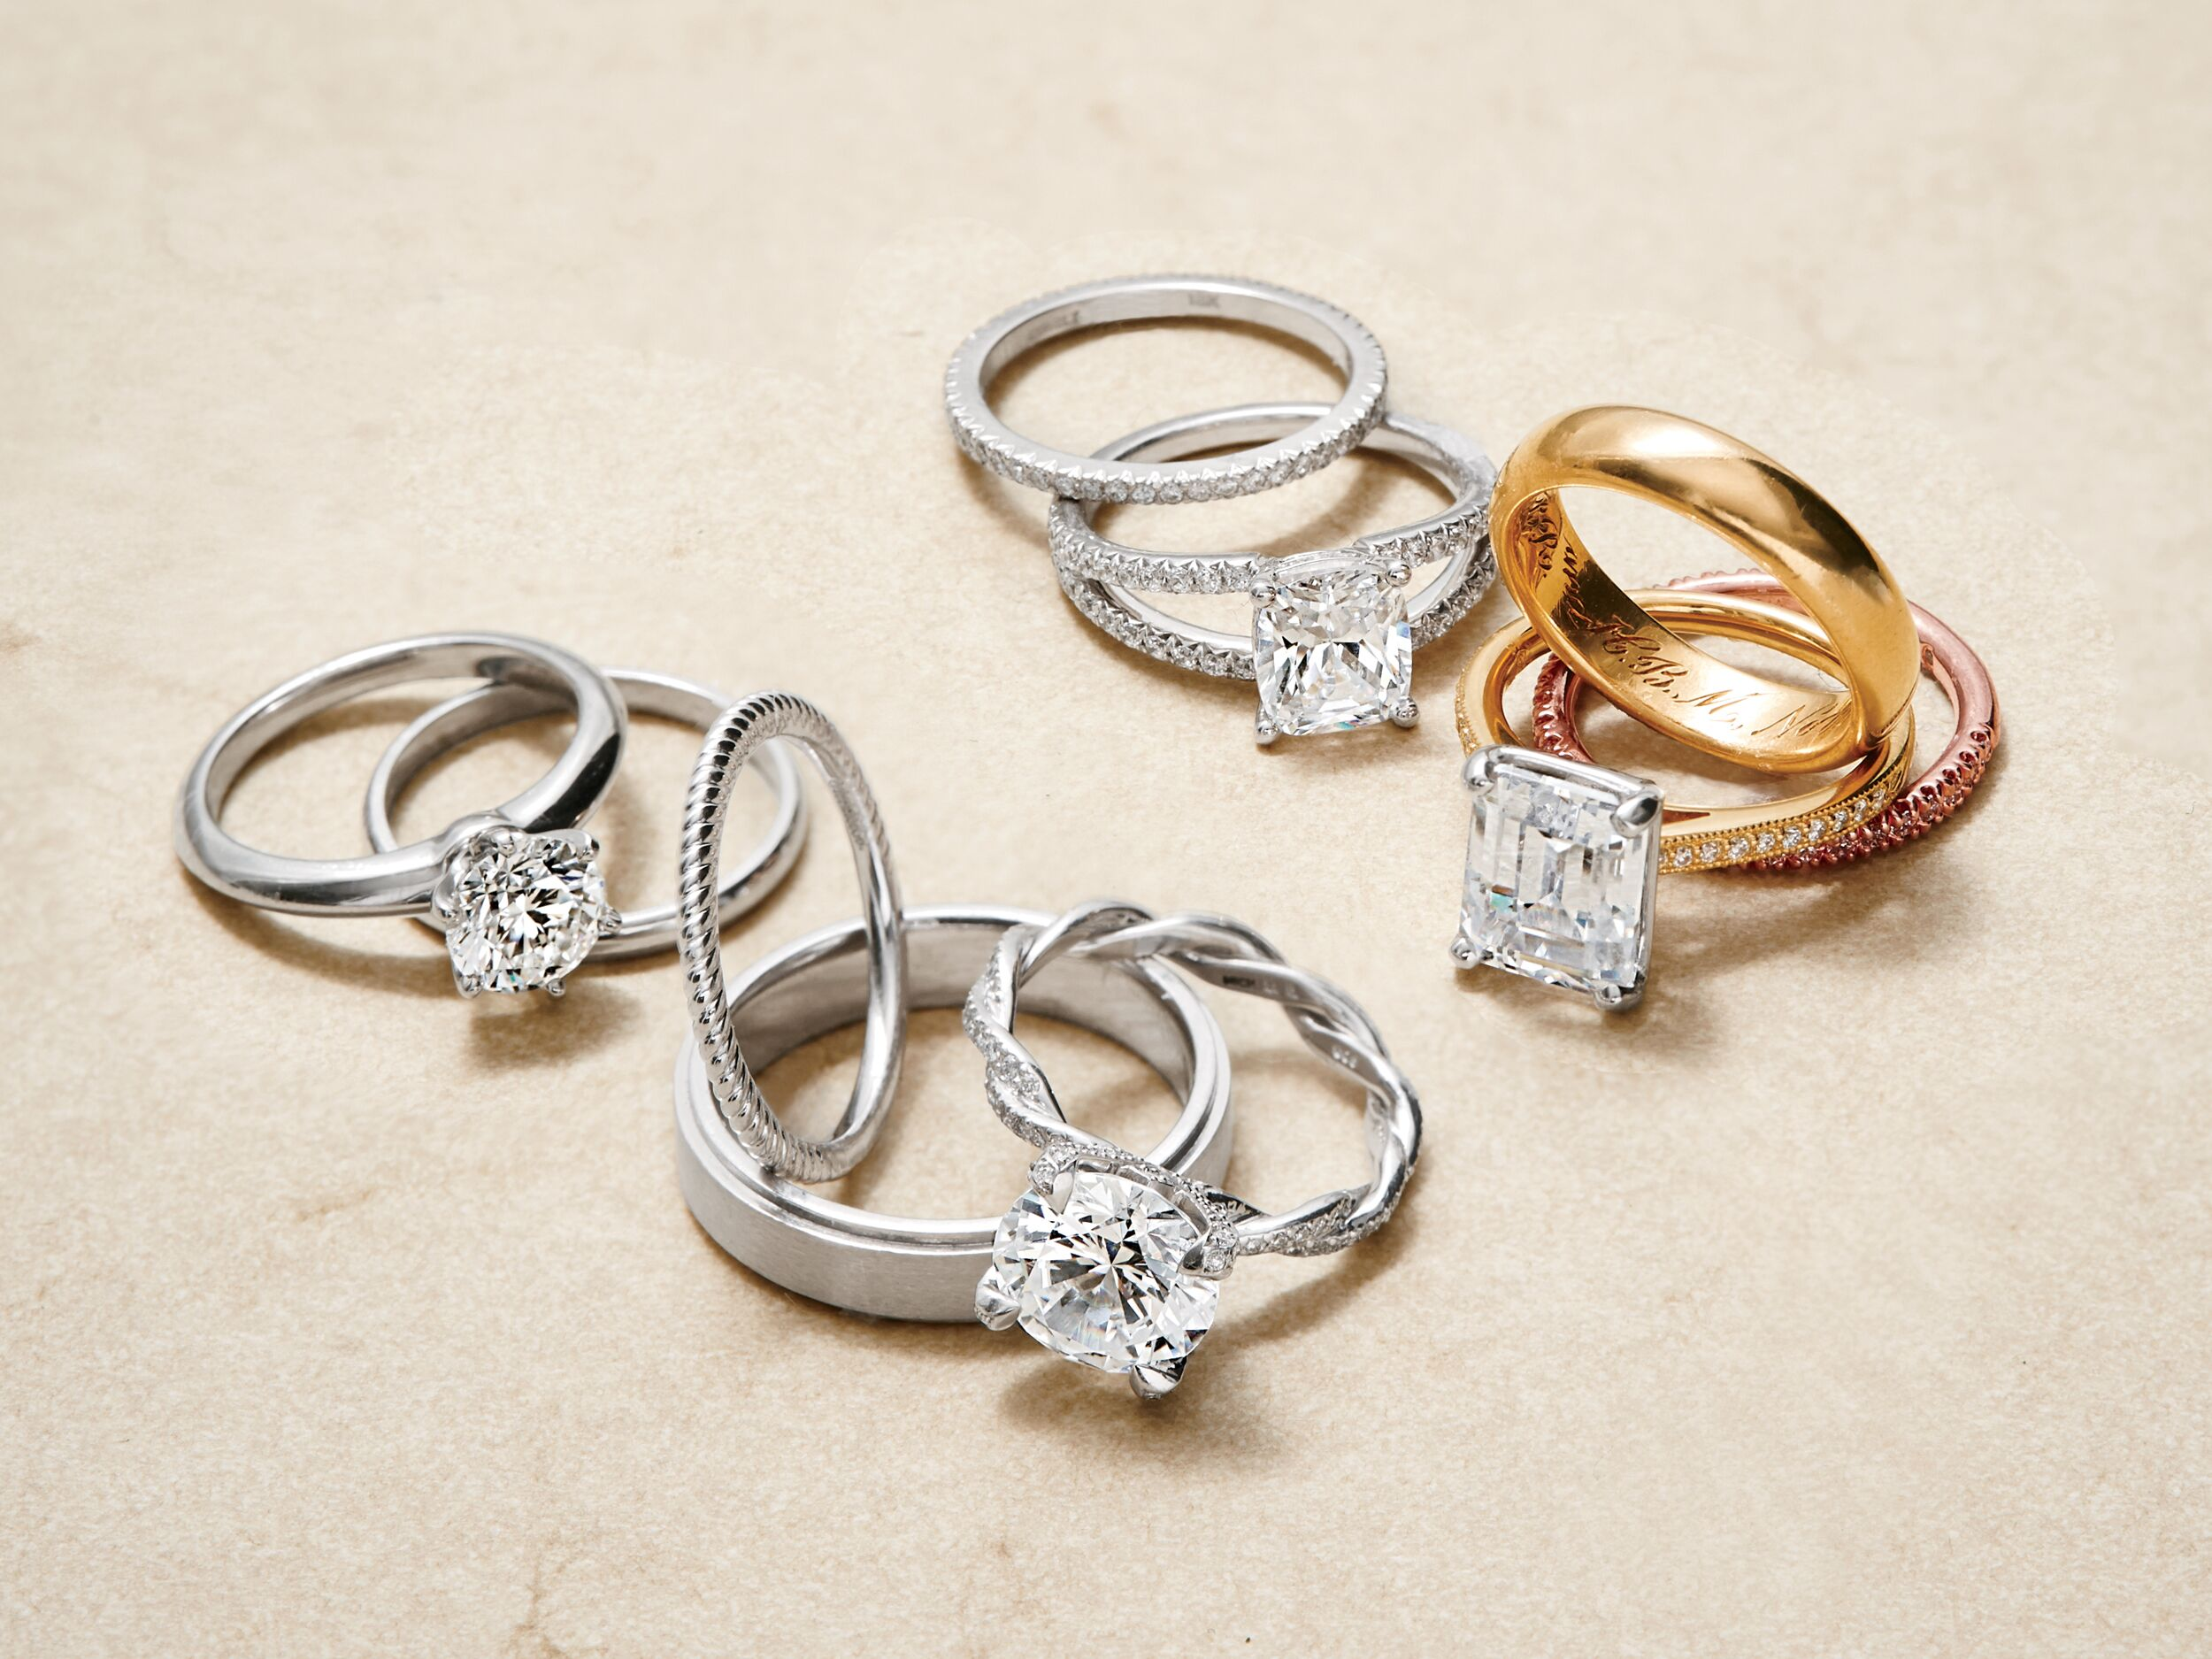 11 ways to pick the perfect wedding ring - Wedding Band Rings